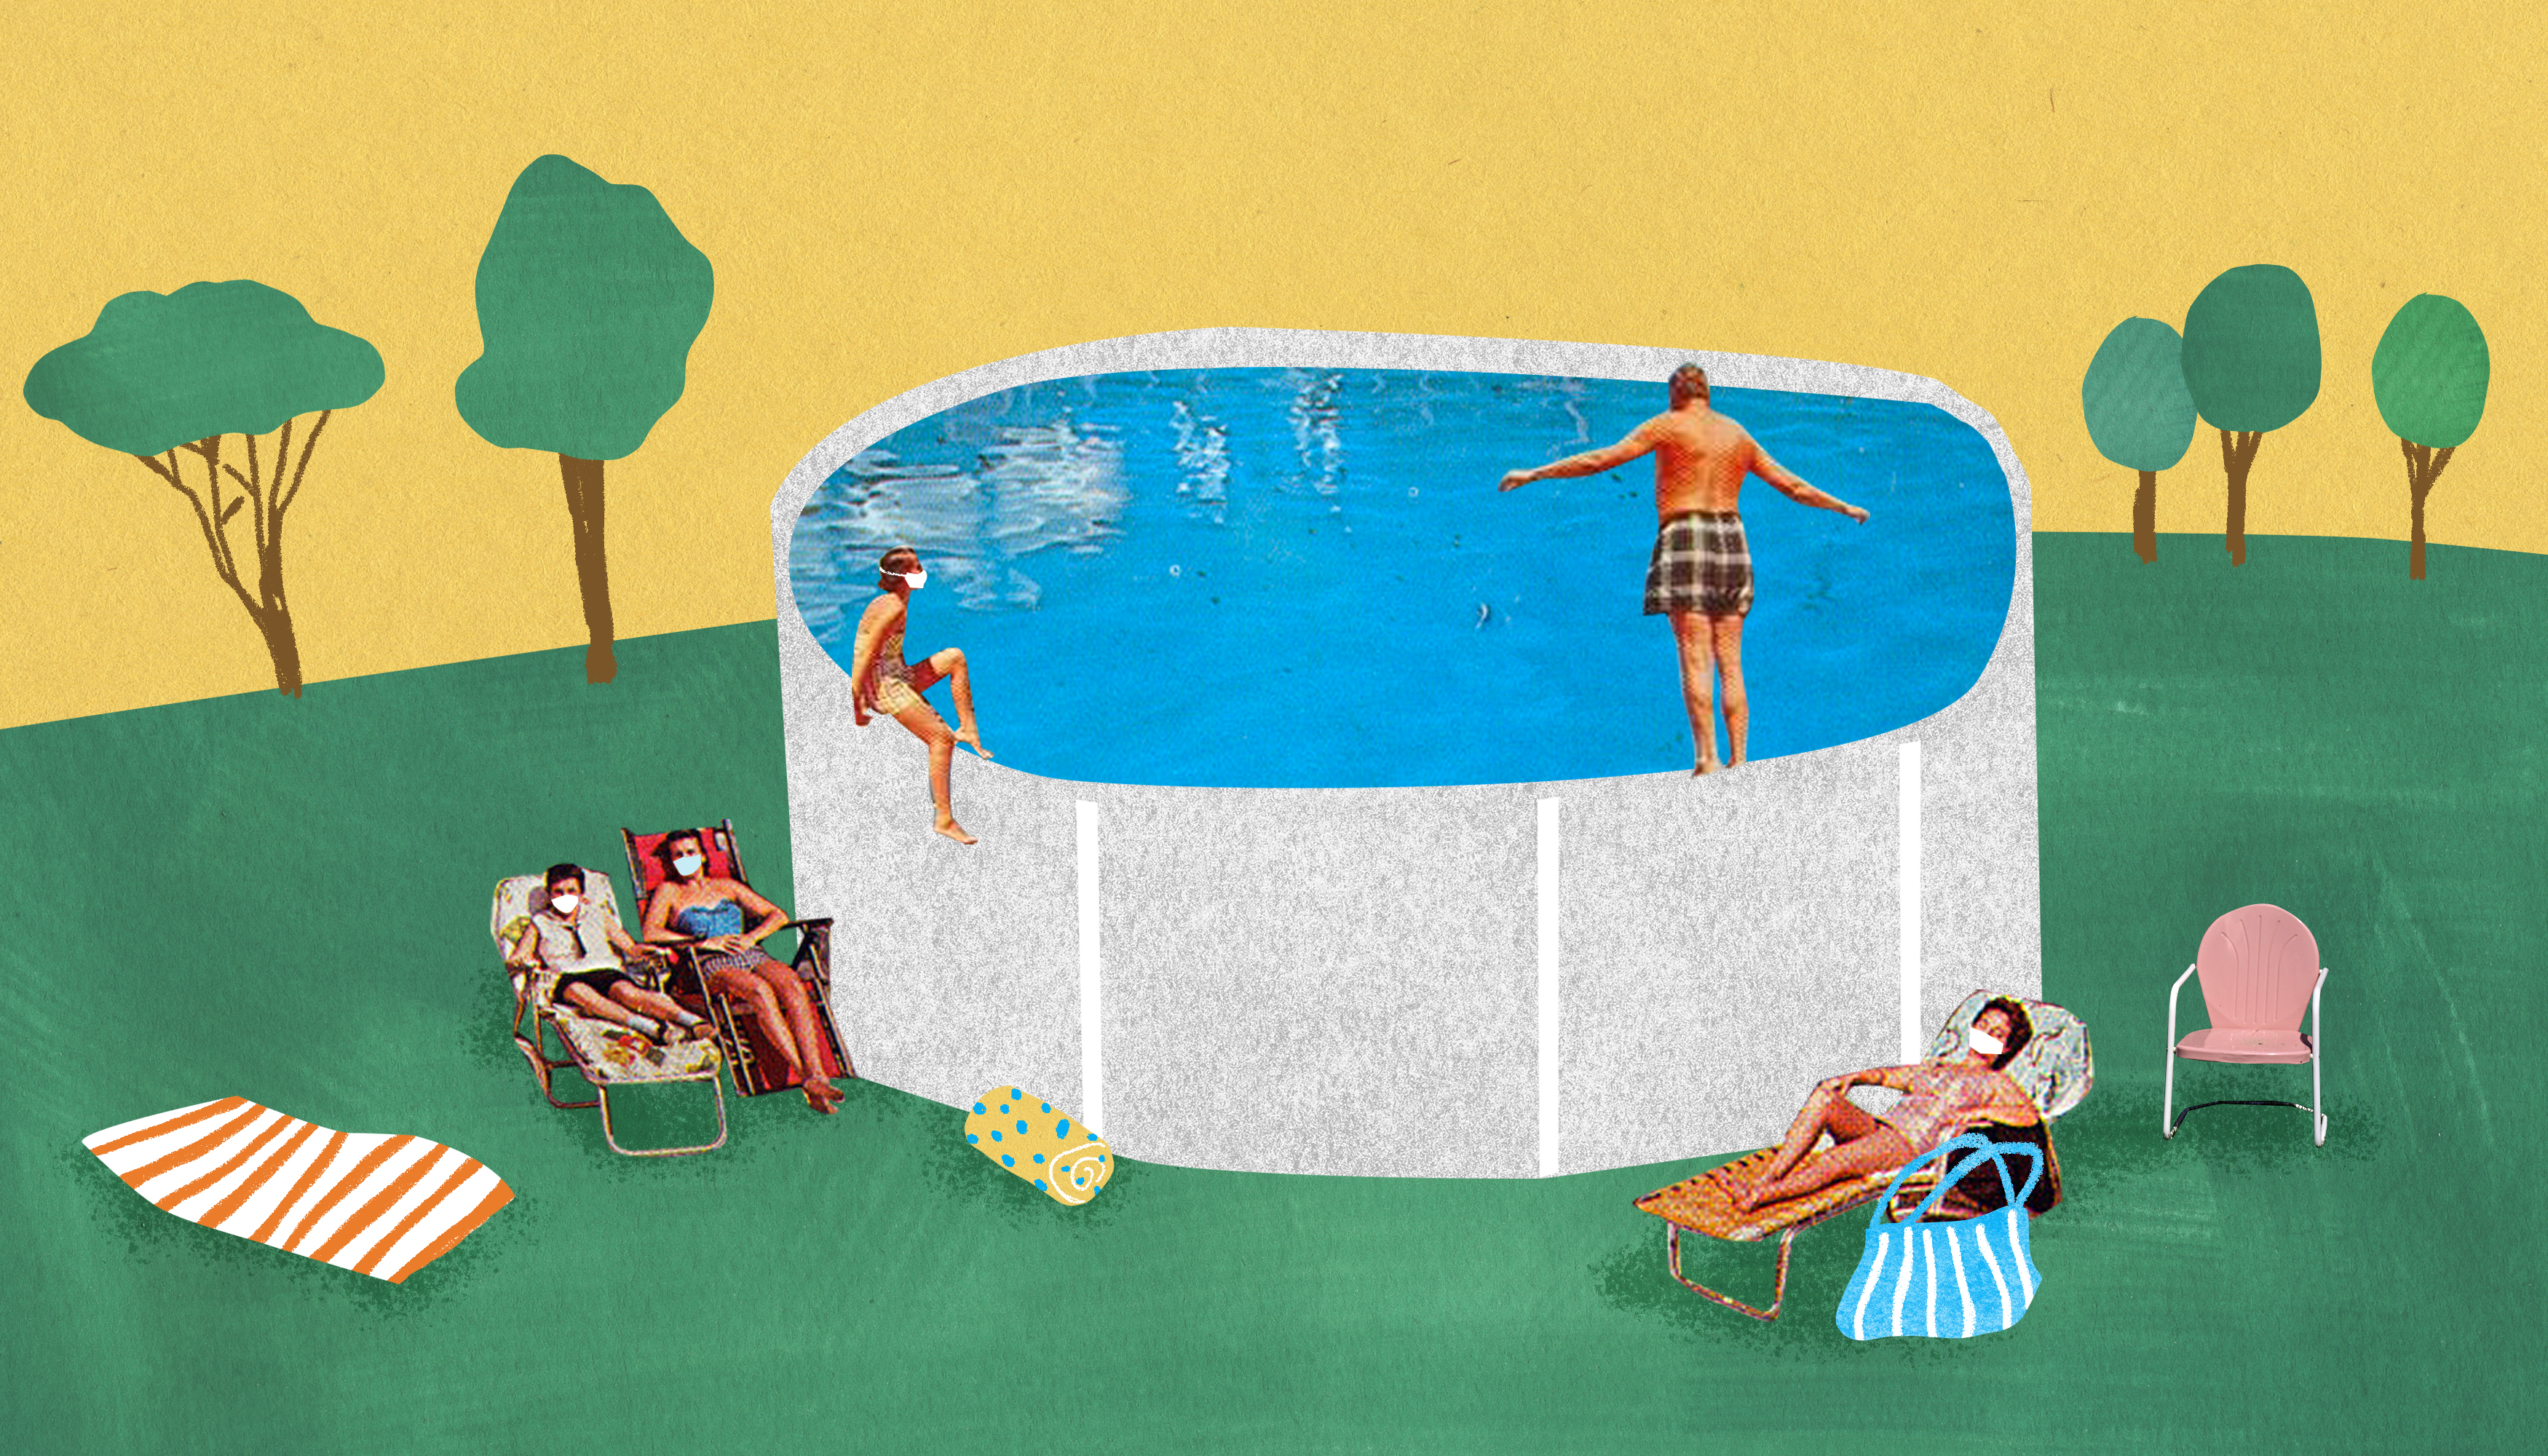 A group of white young adults lounge around an above ground swimming pool in a sprawling backyard. Illustration shows that above ground pools are popular during the coronavirus pandemic.